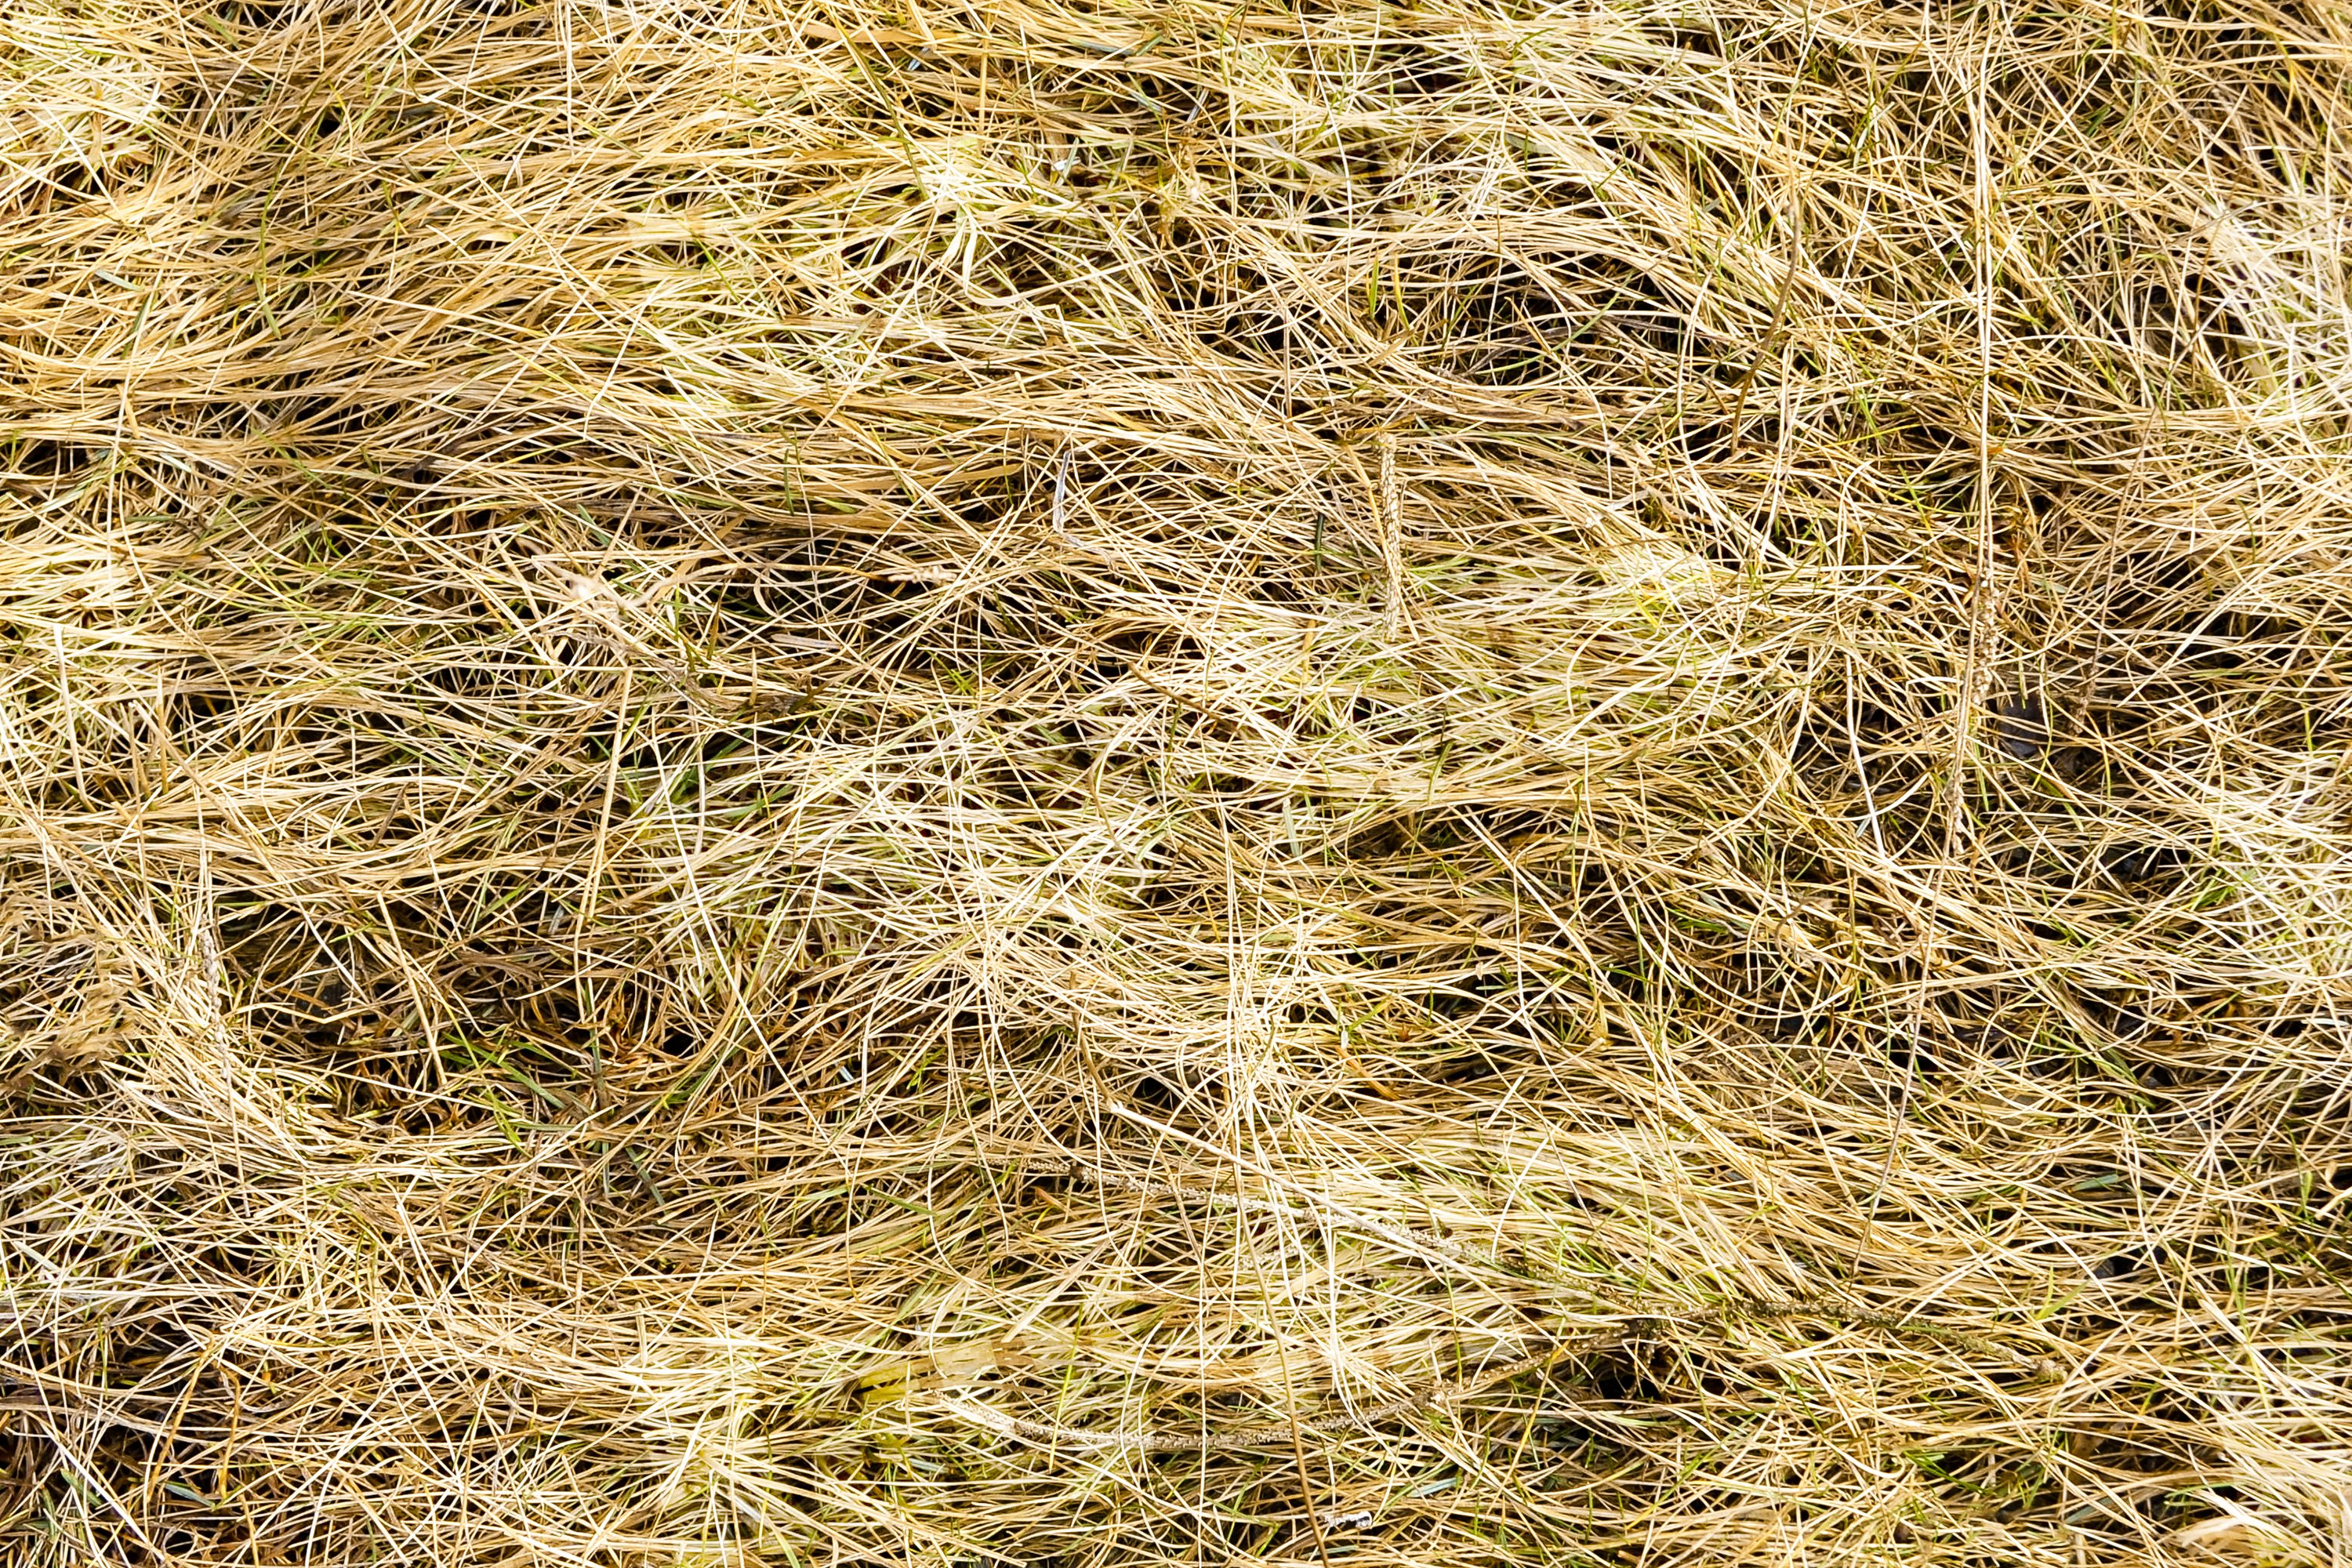 Straw texture background example image 1